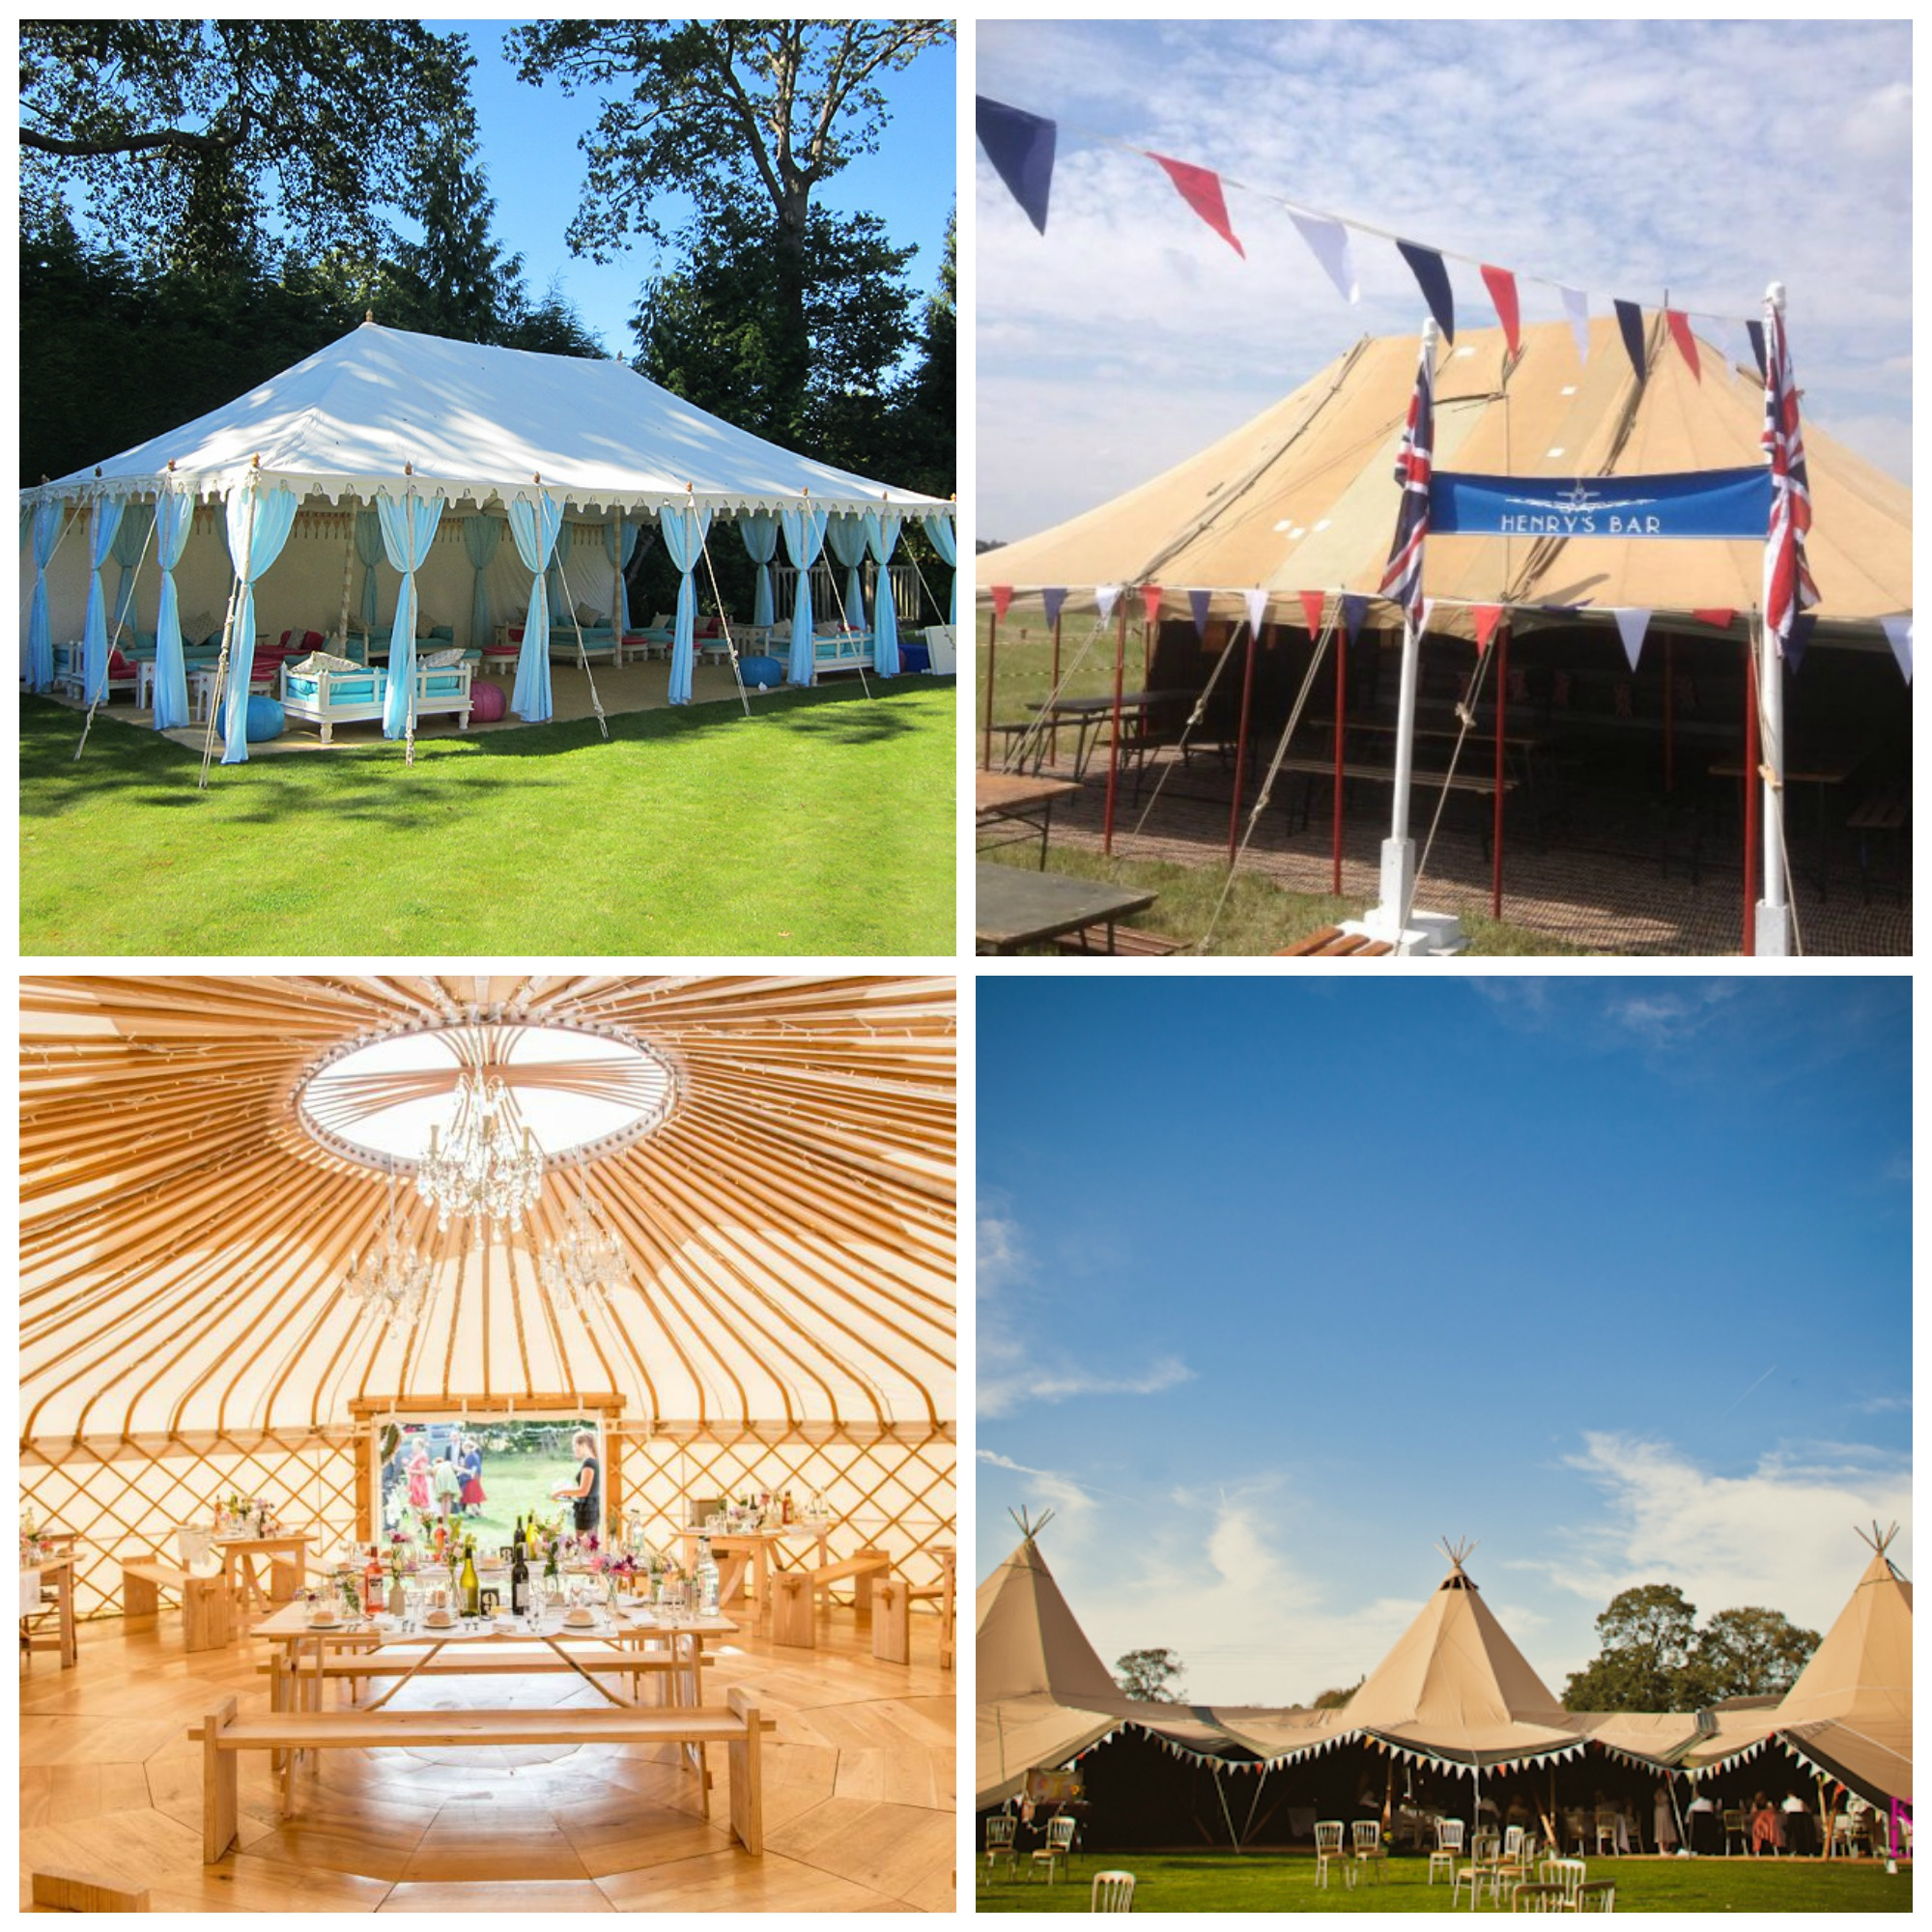 Clockwise from top left: Indian style Raj tent; vintage military tent; tipis; yurt